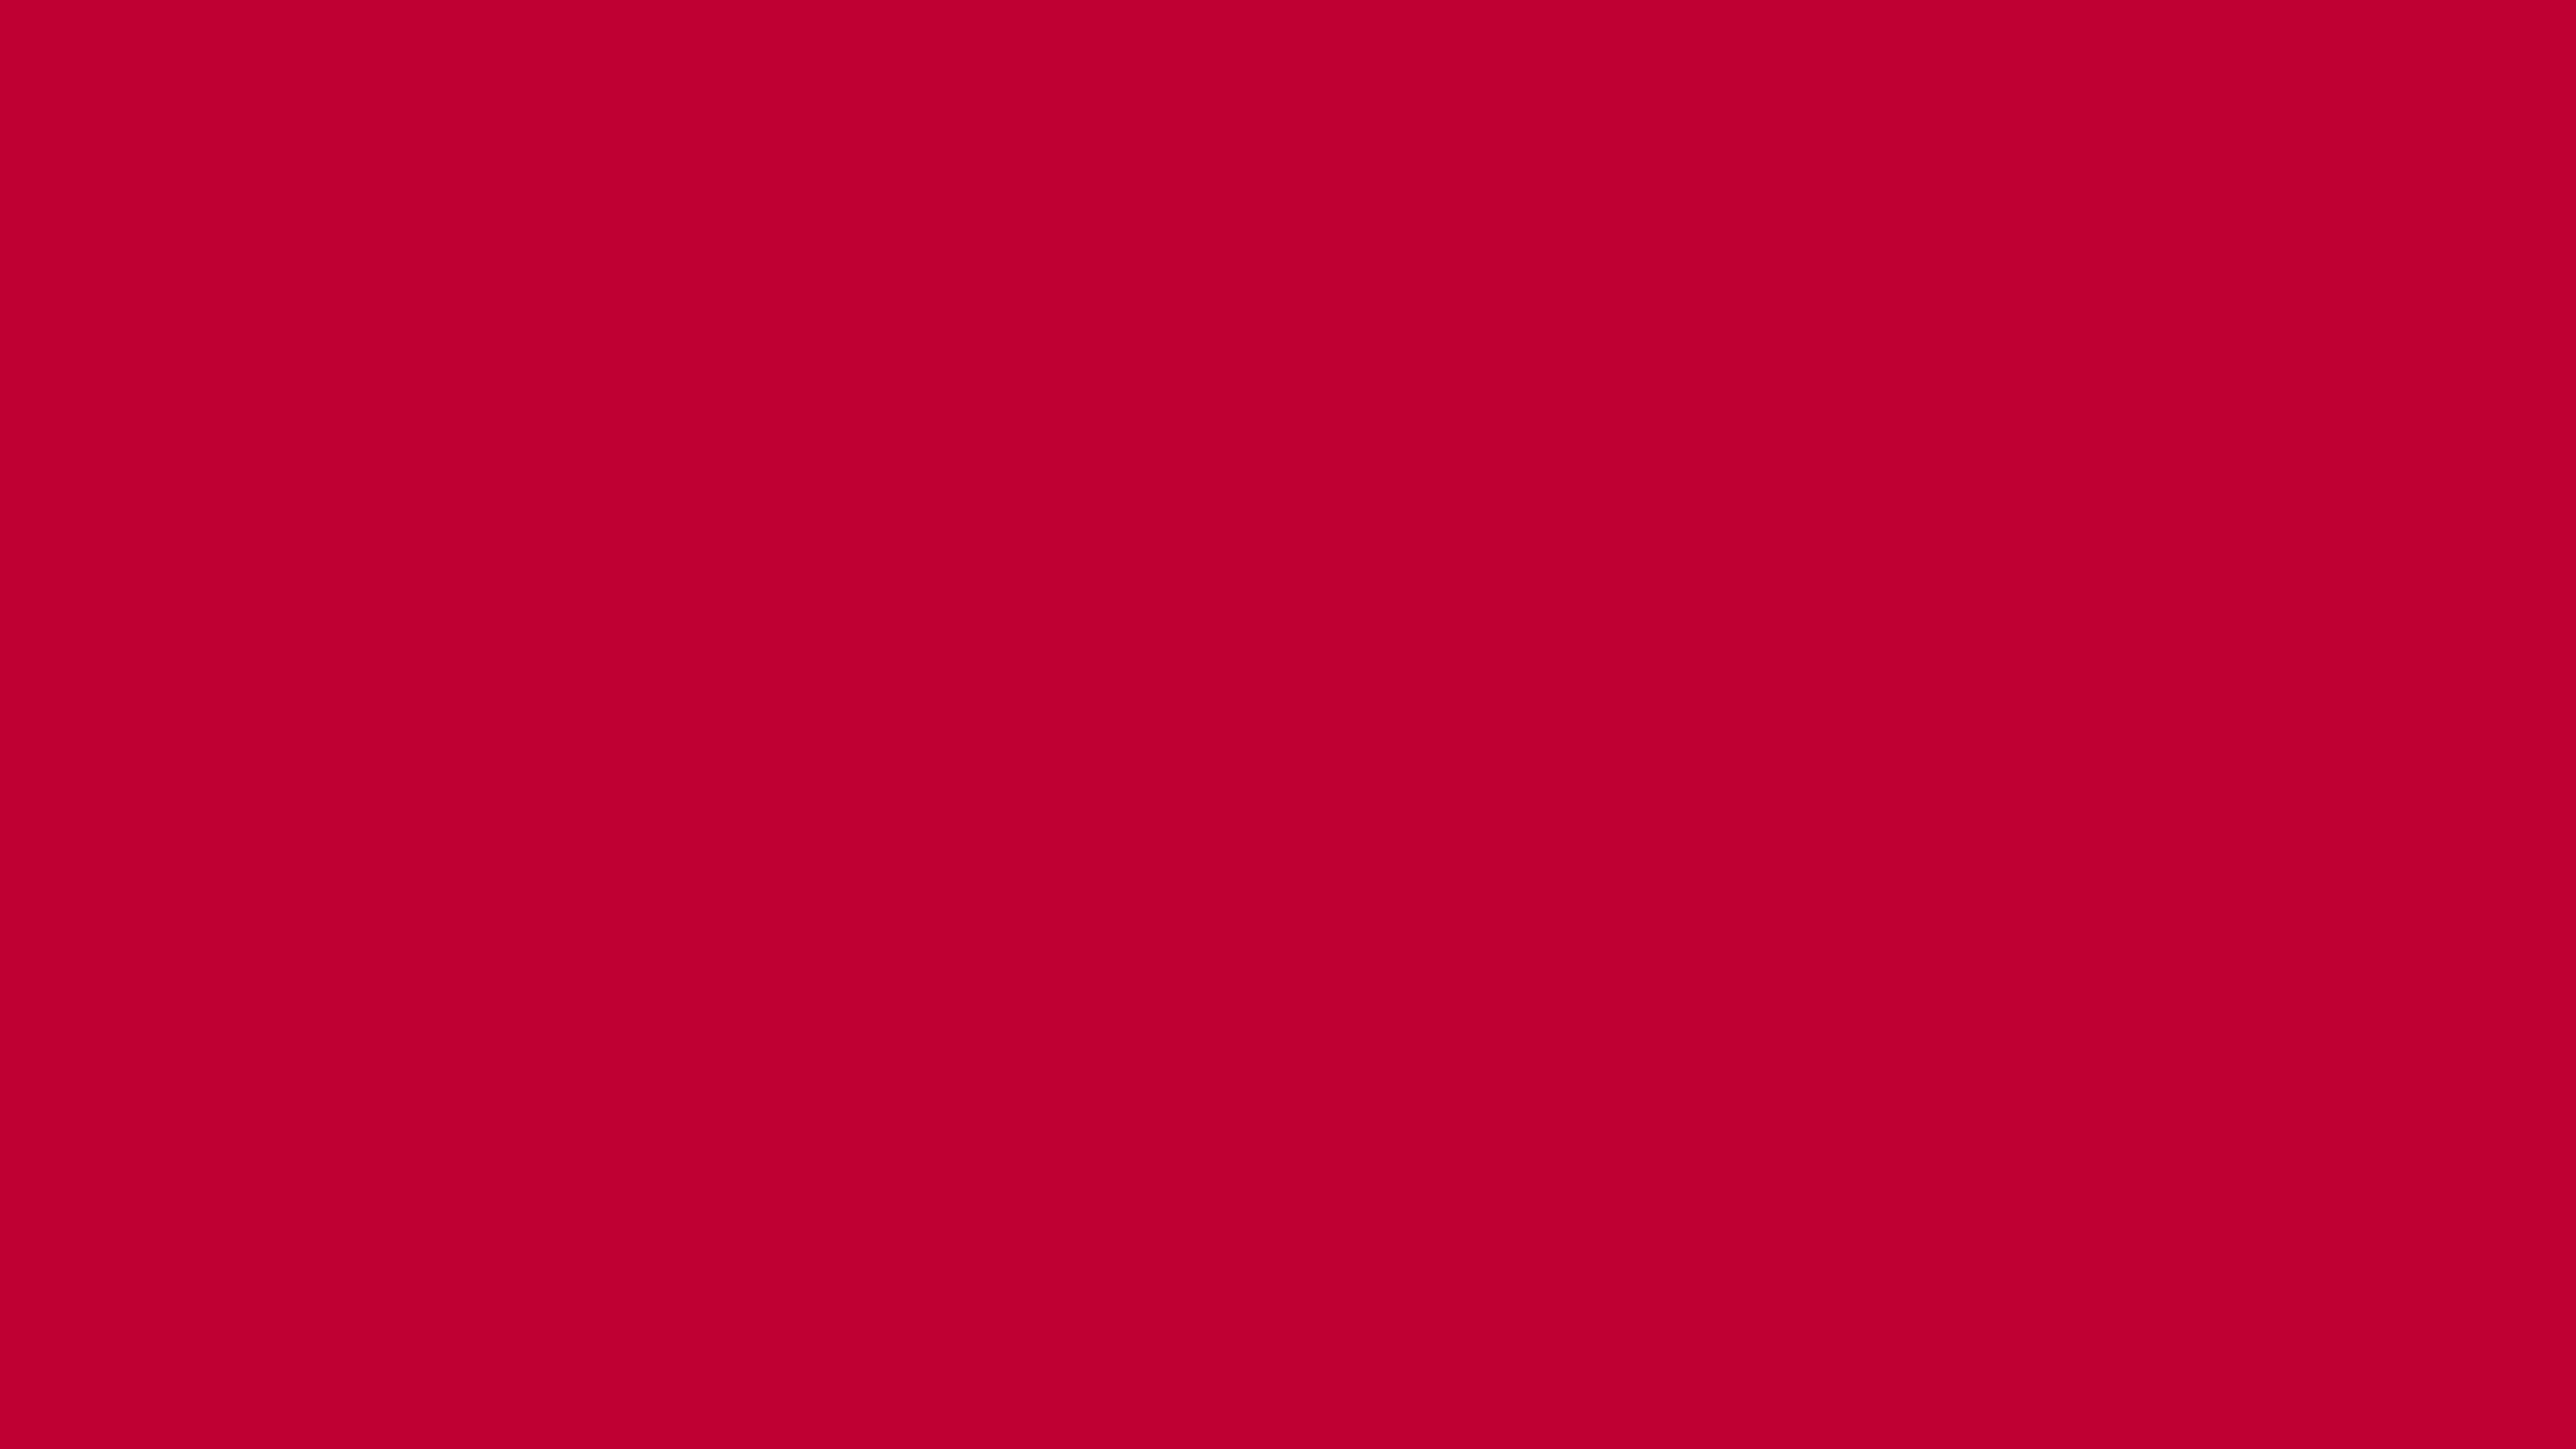 7680x4320 Crimson Glory Solid Color Background